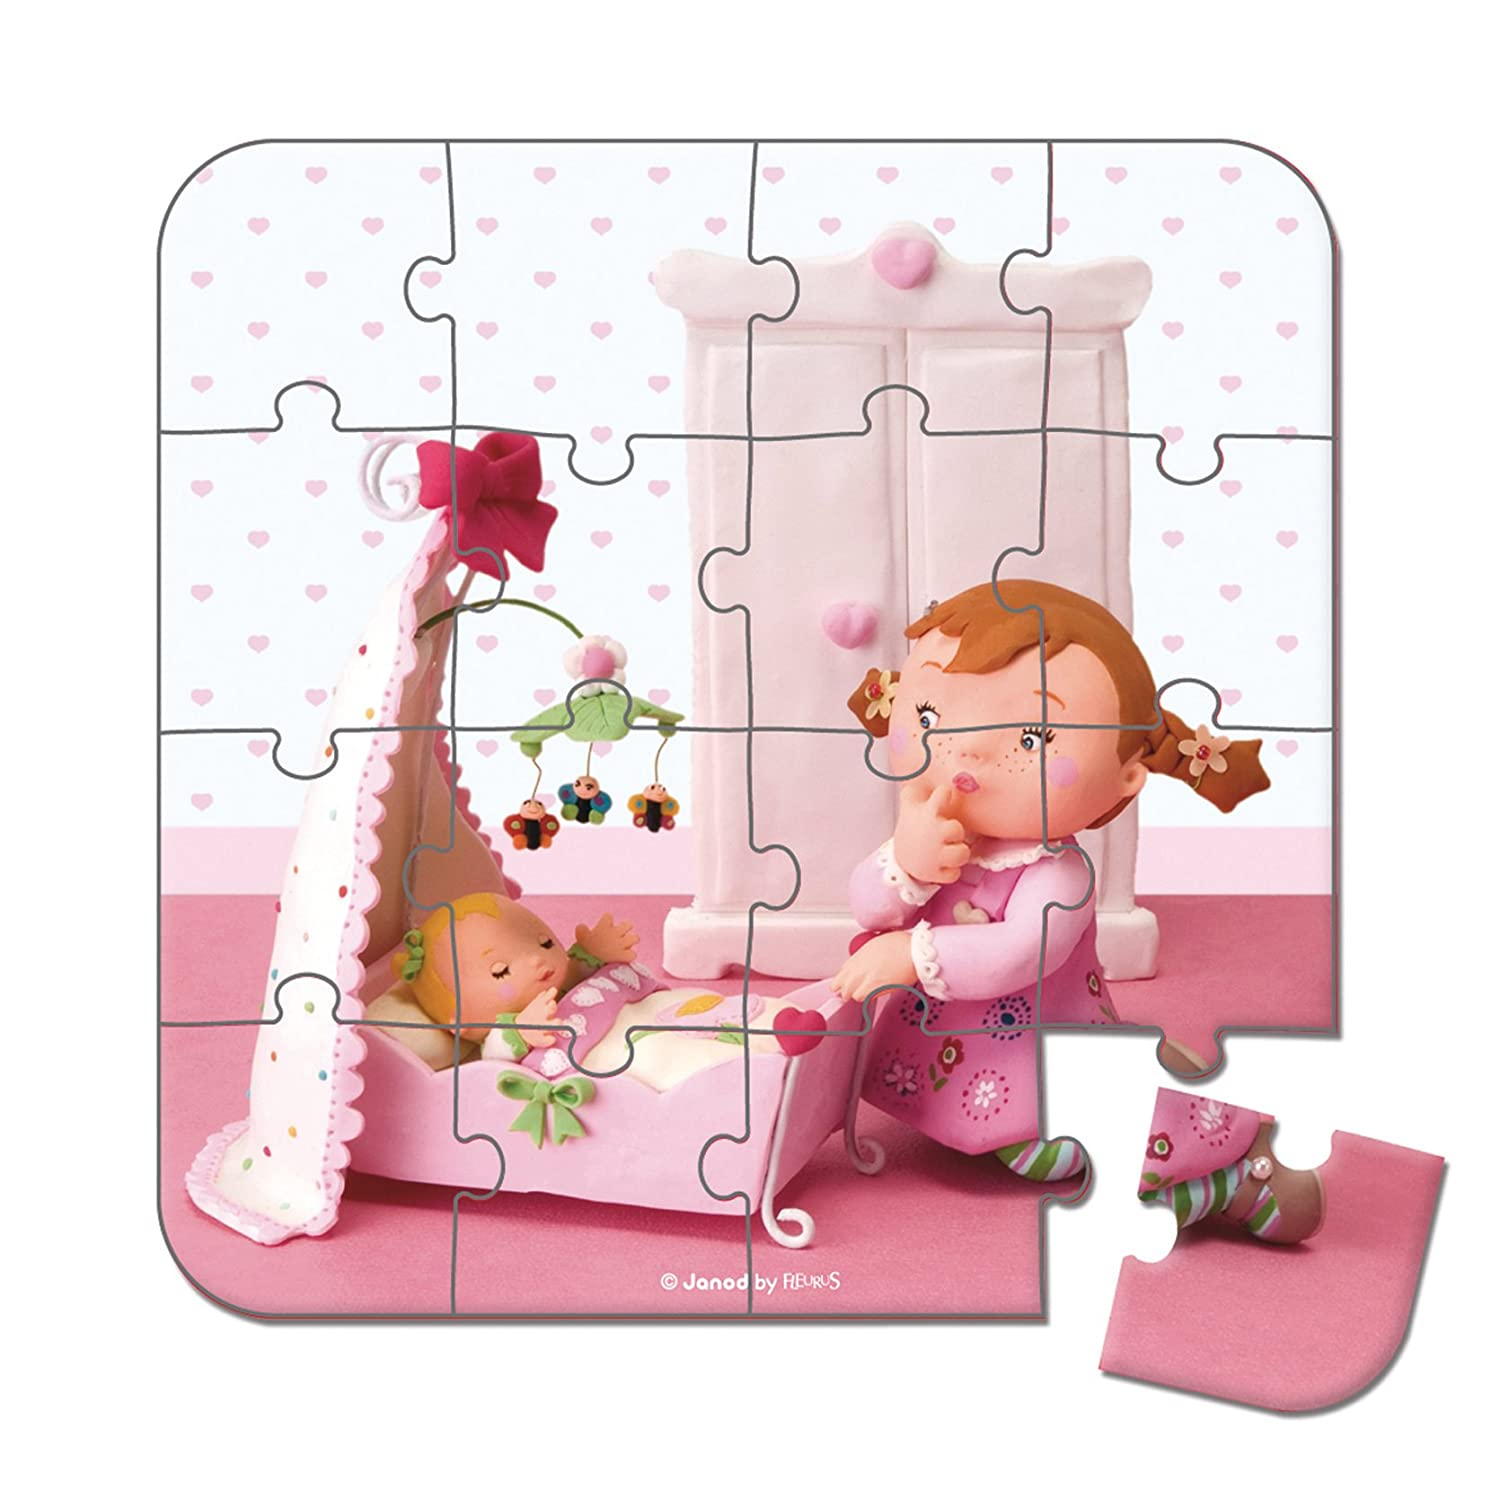 Janod 4-in-1 Lilou Plays Puzzle with Dolls